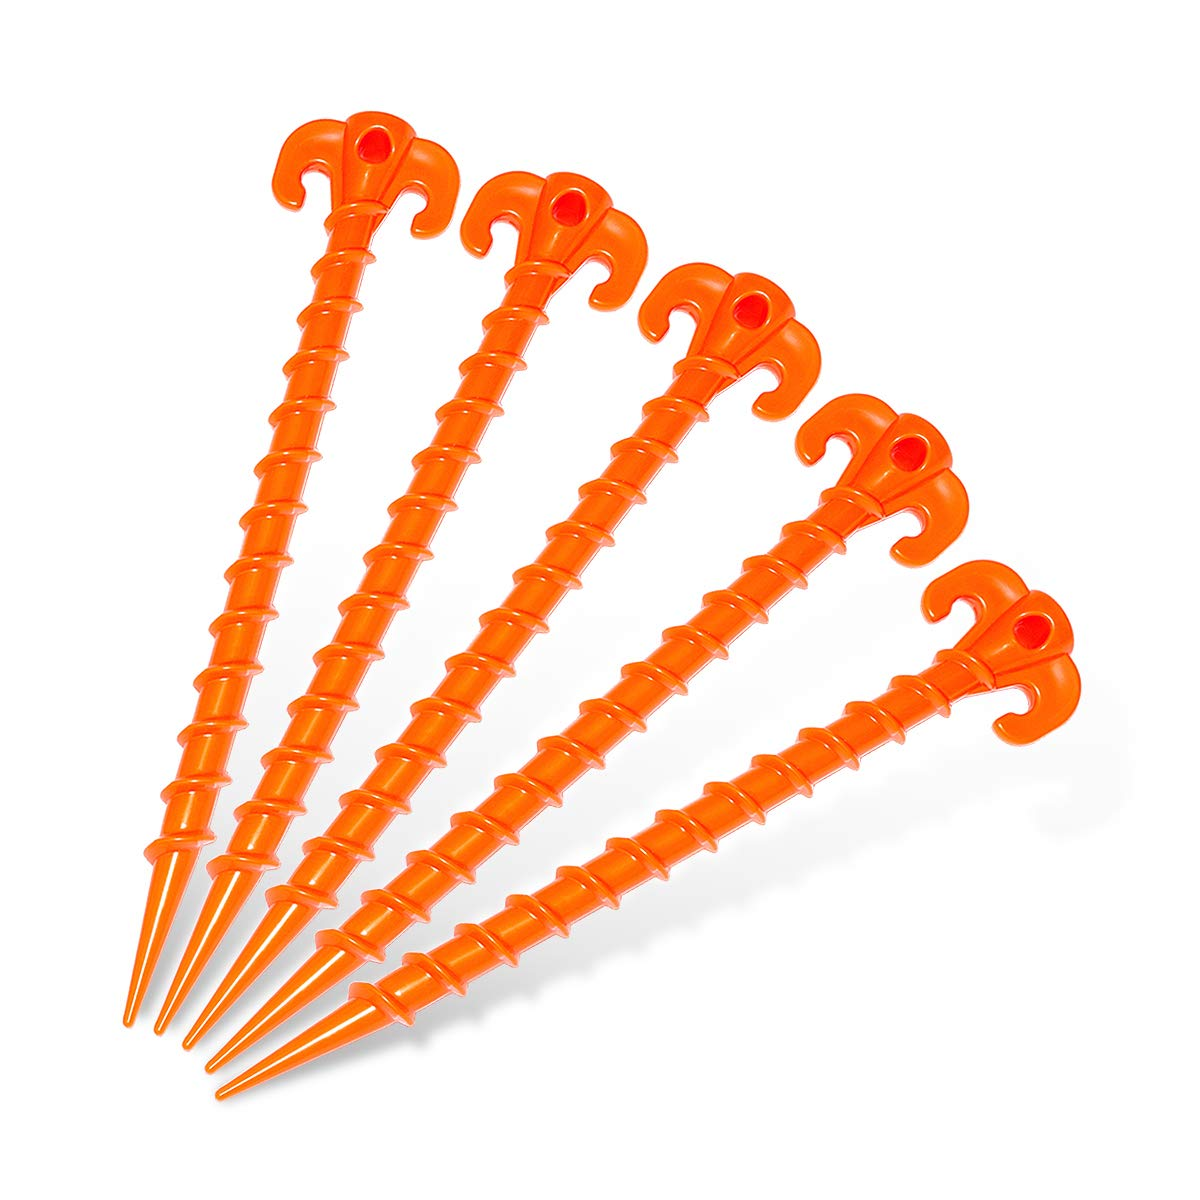 Hikemax plastic spiral camping stakes